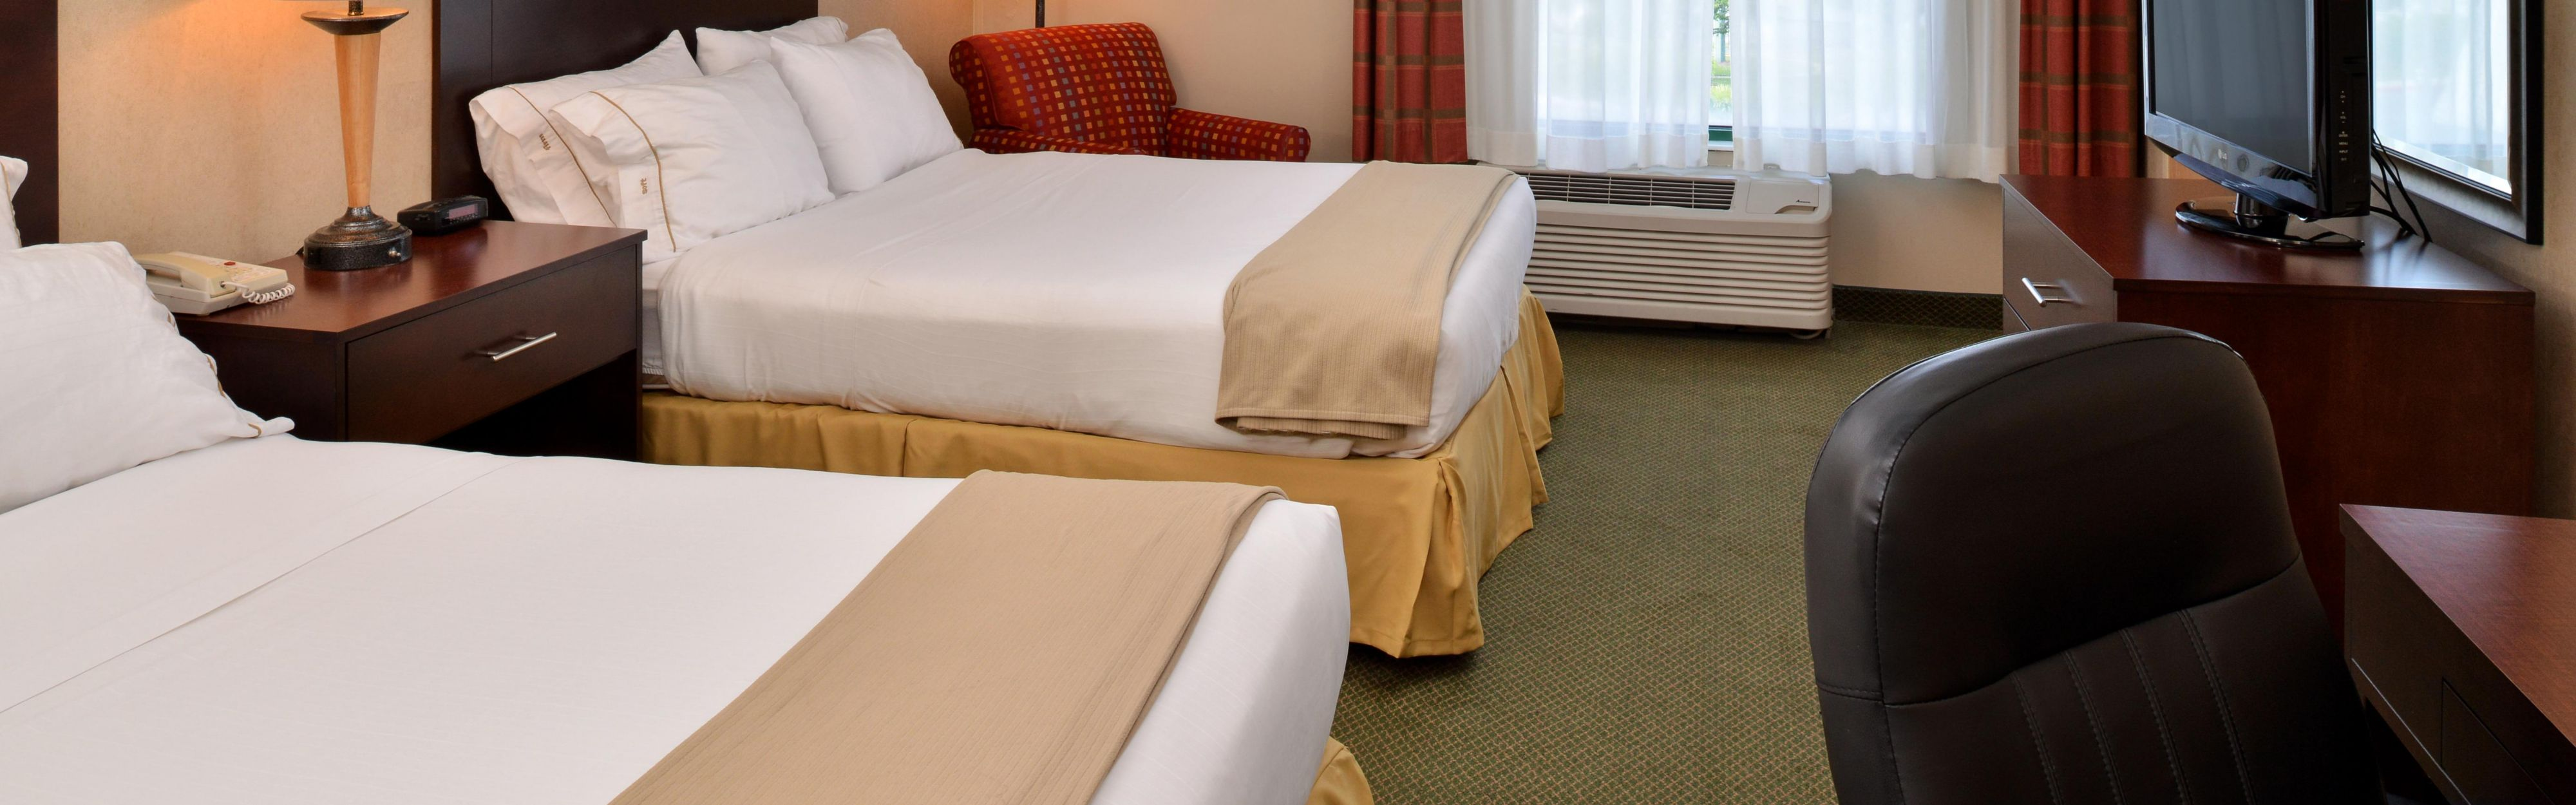 Holiday Inn Express & Suites Ocean City image 1